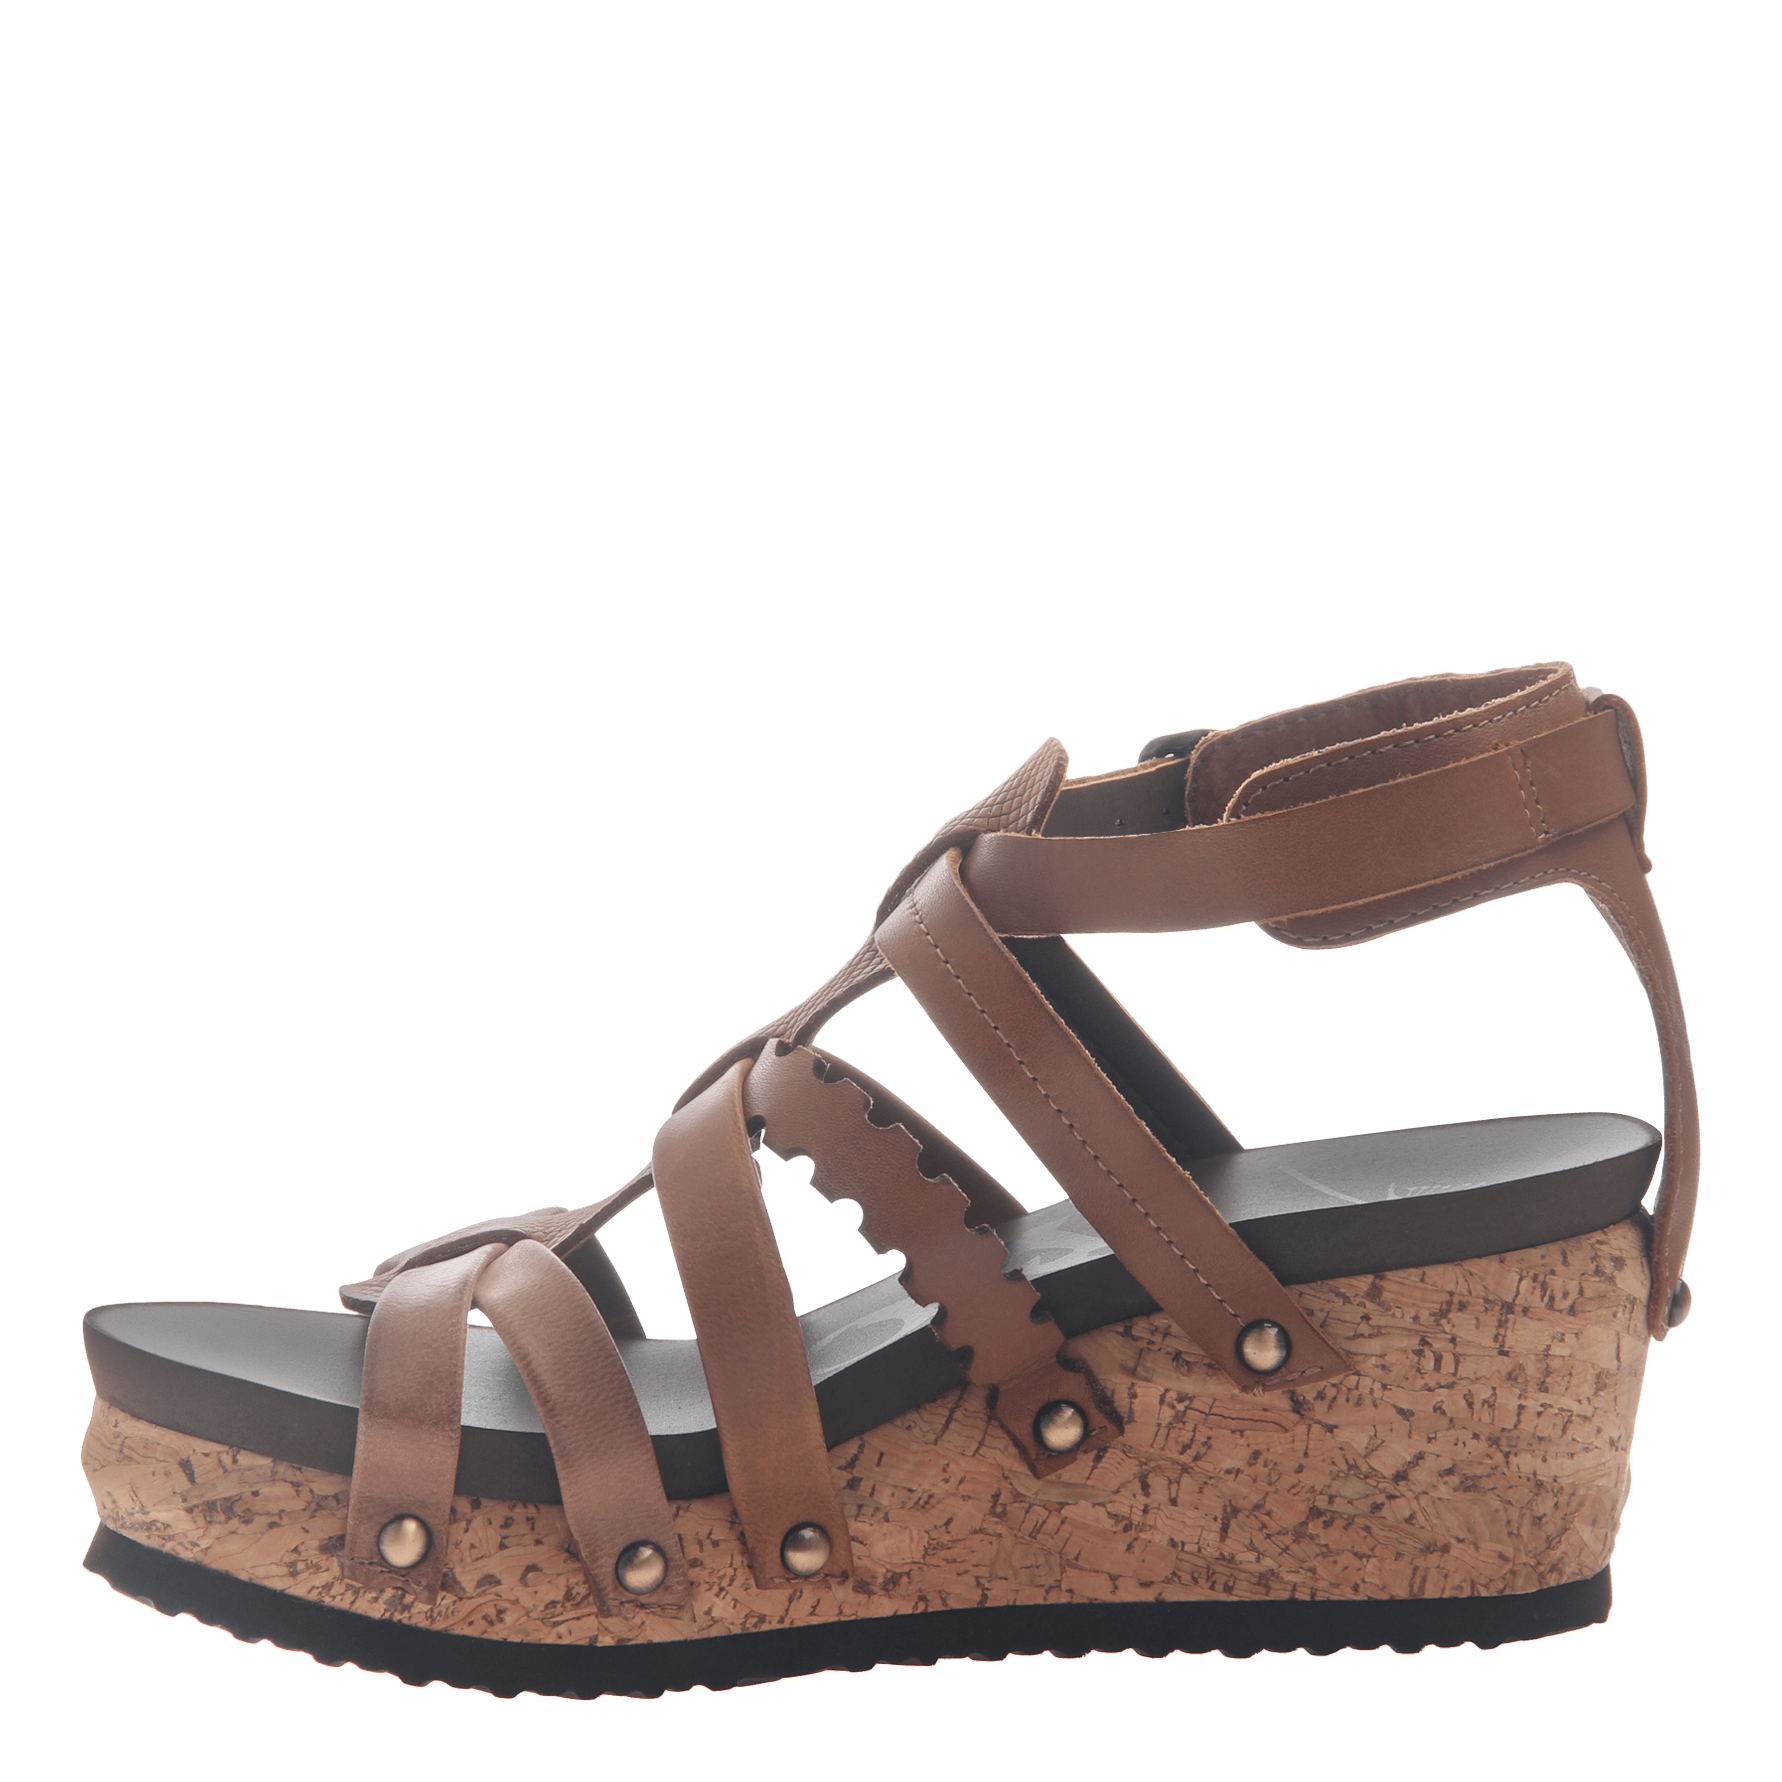 9f069b9ffd8 Womens wedge gladiator sandal storm in New Brown side view